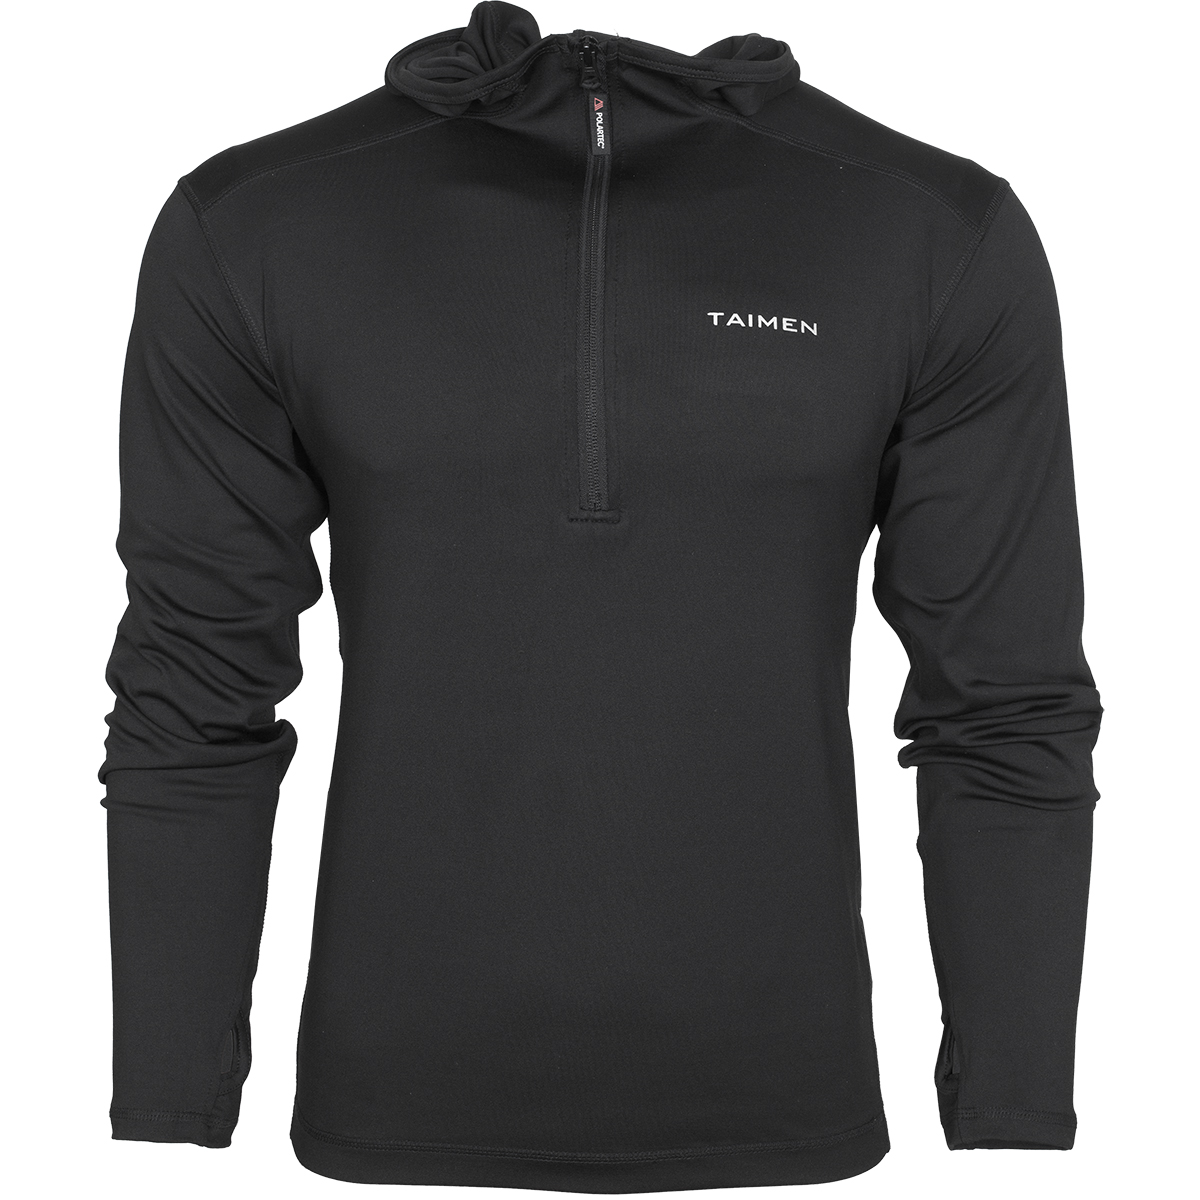 Buy USMC Polartec ECWCS GEN III LEVEL 2 Cold Weather Drawers Longjohns Sand XXL X Long and other Active Base Layers at venchik.ml Our wide selection is .